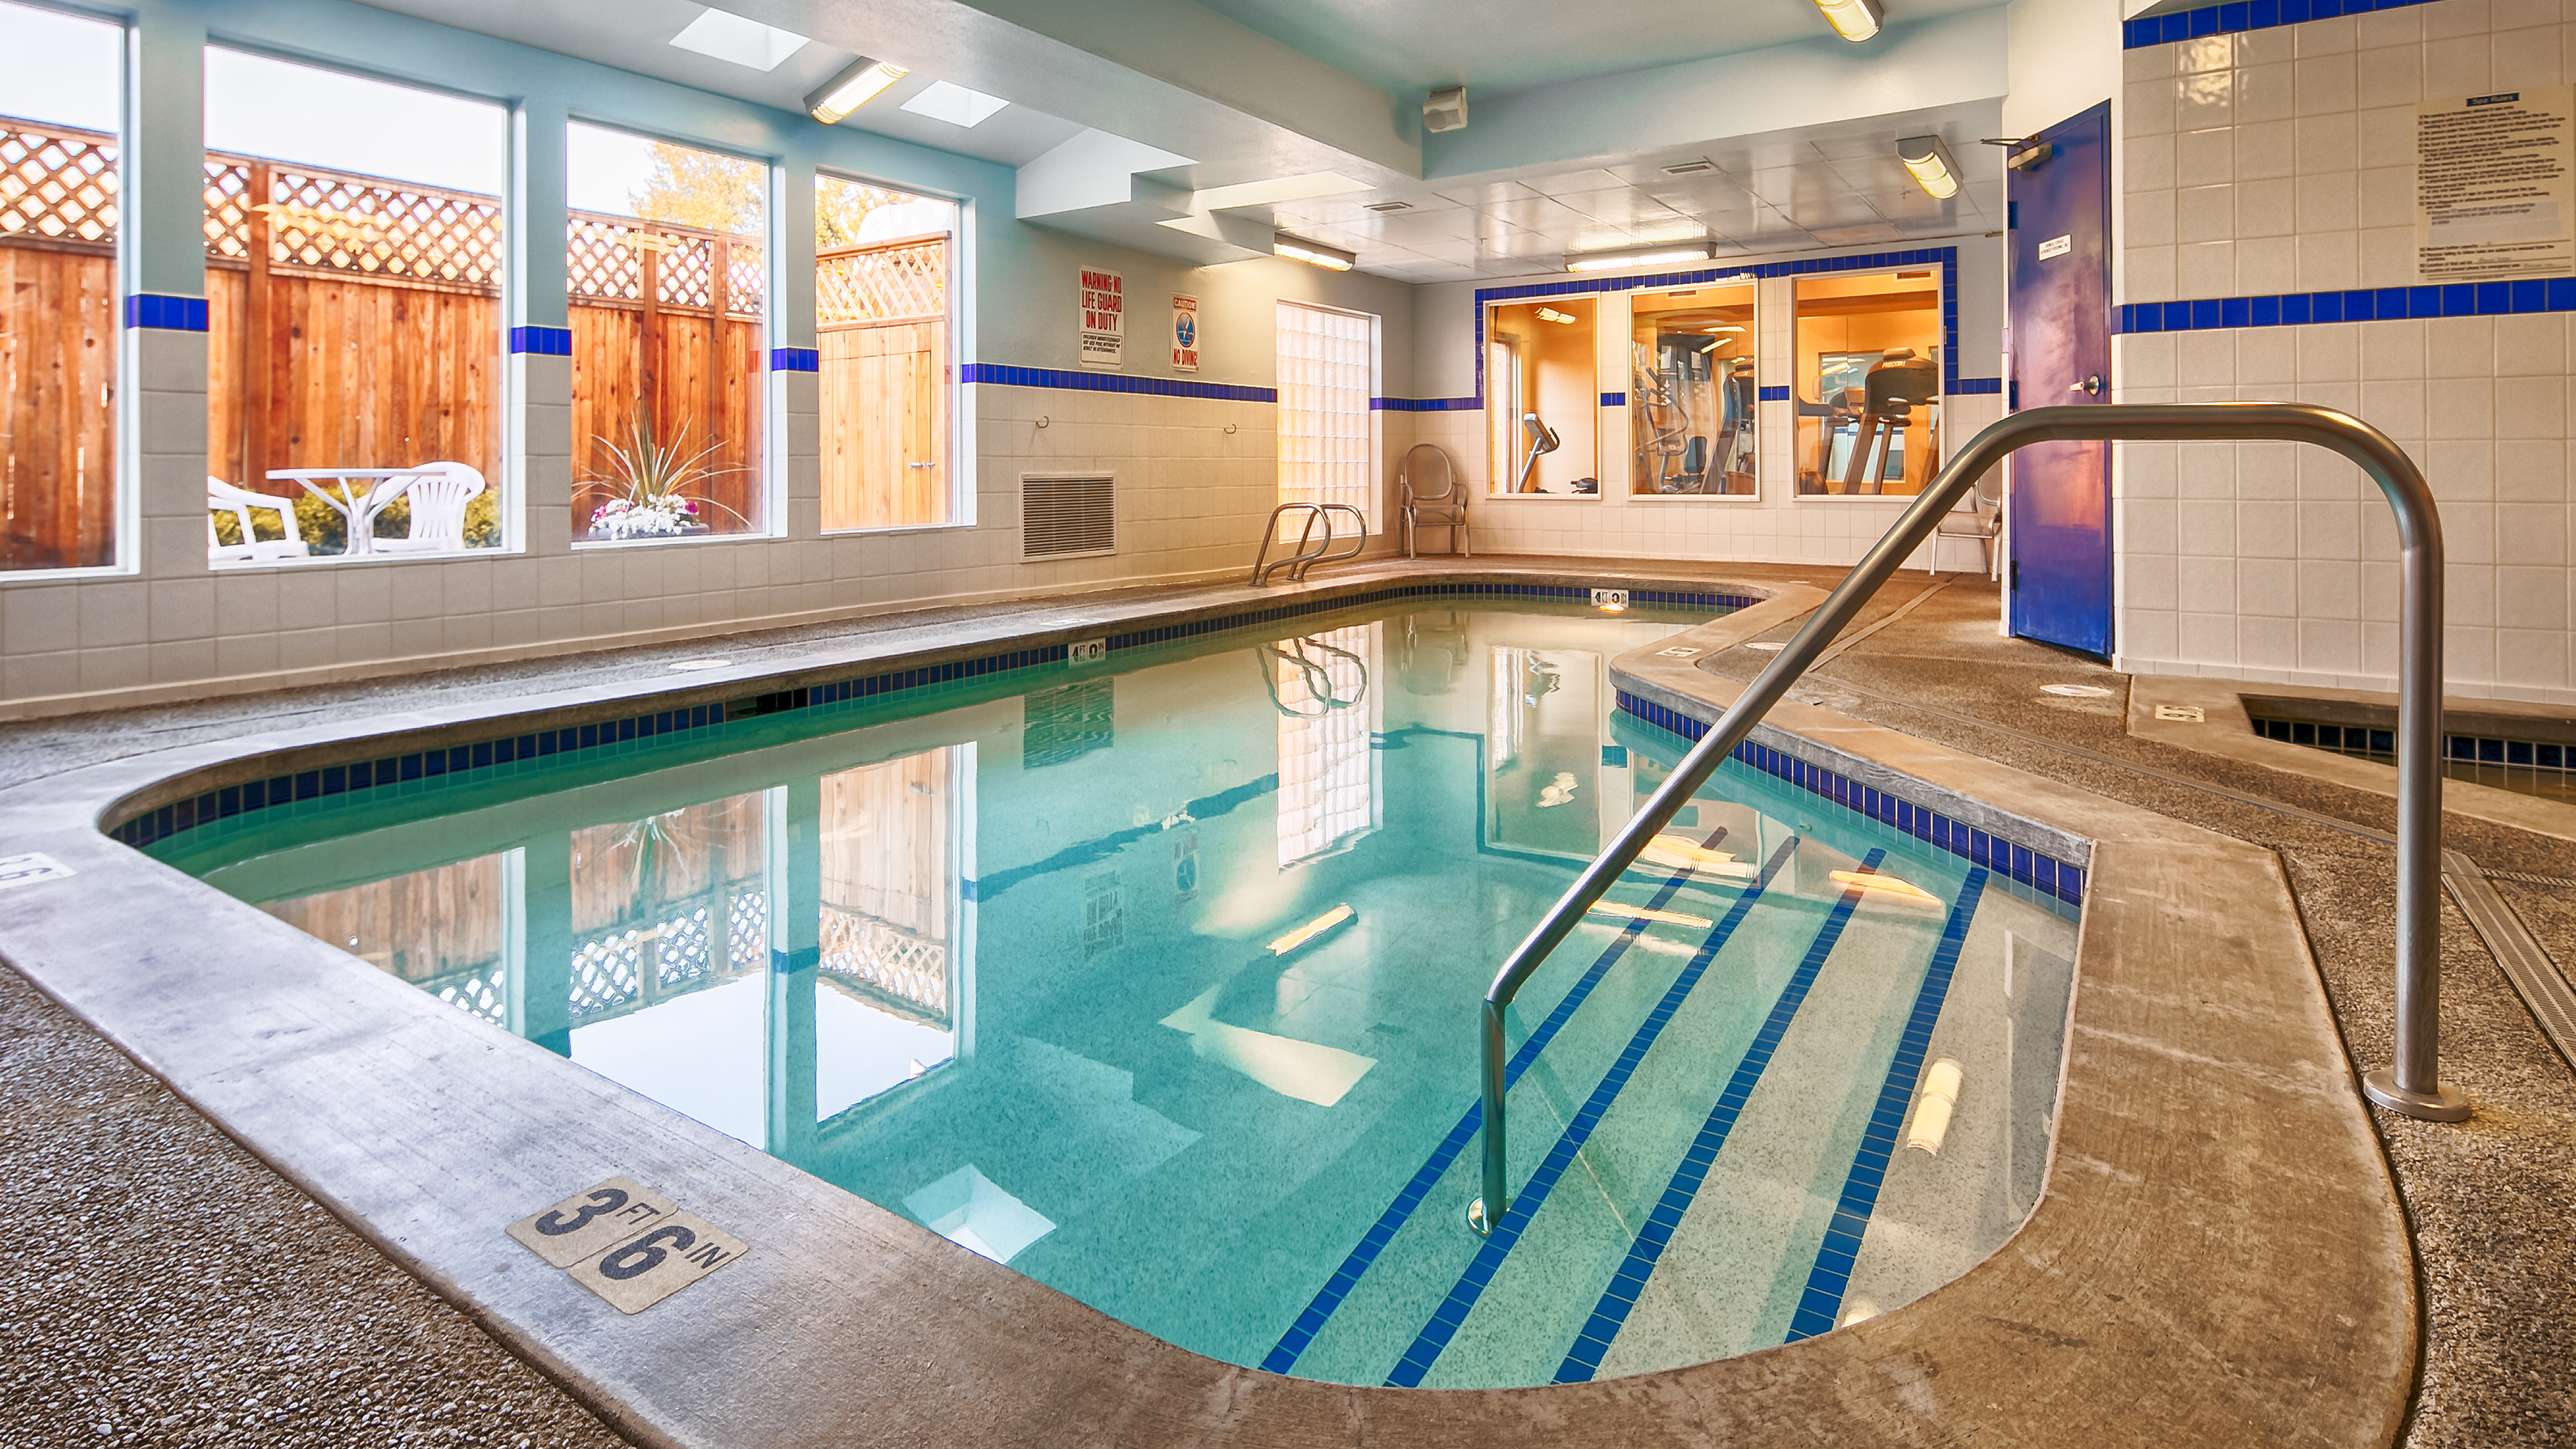 Hotel in Everett WA with Indoor Pool  Best Western Plus